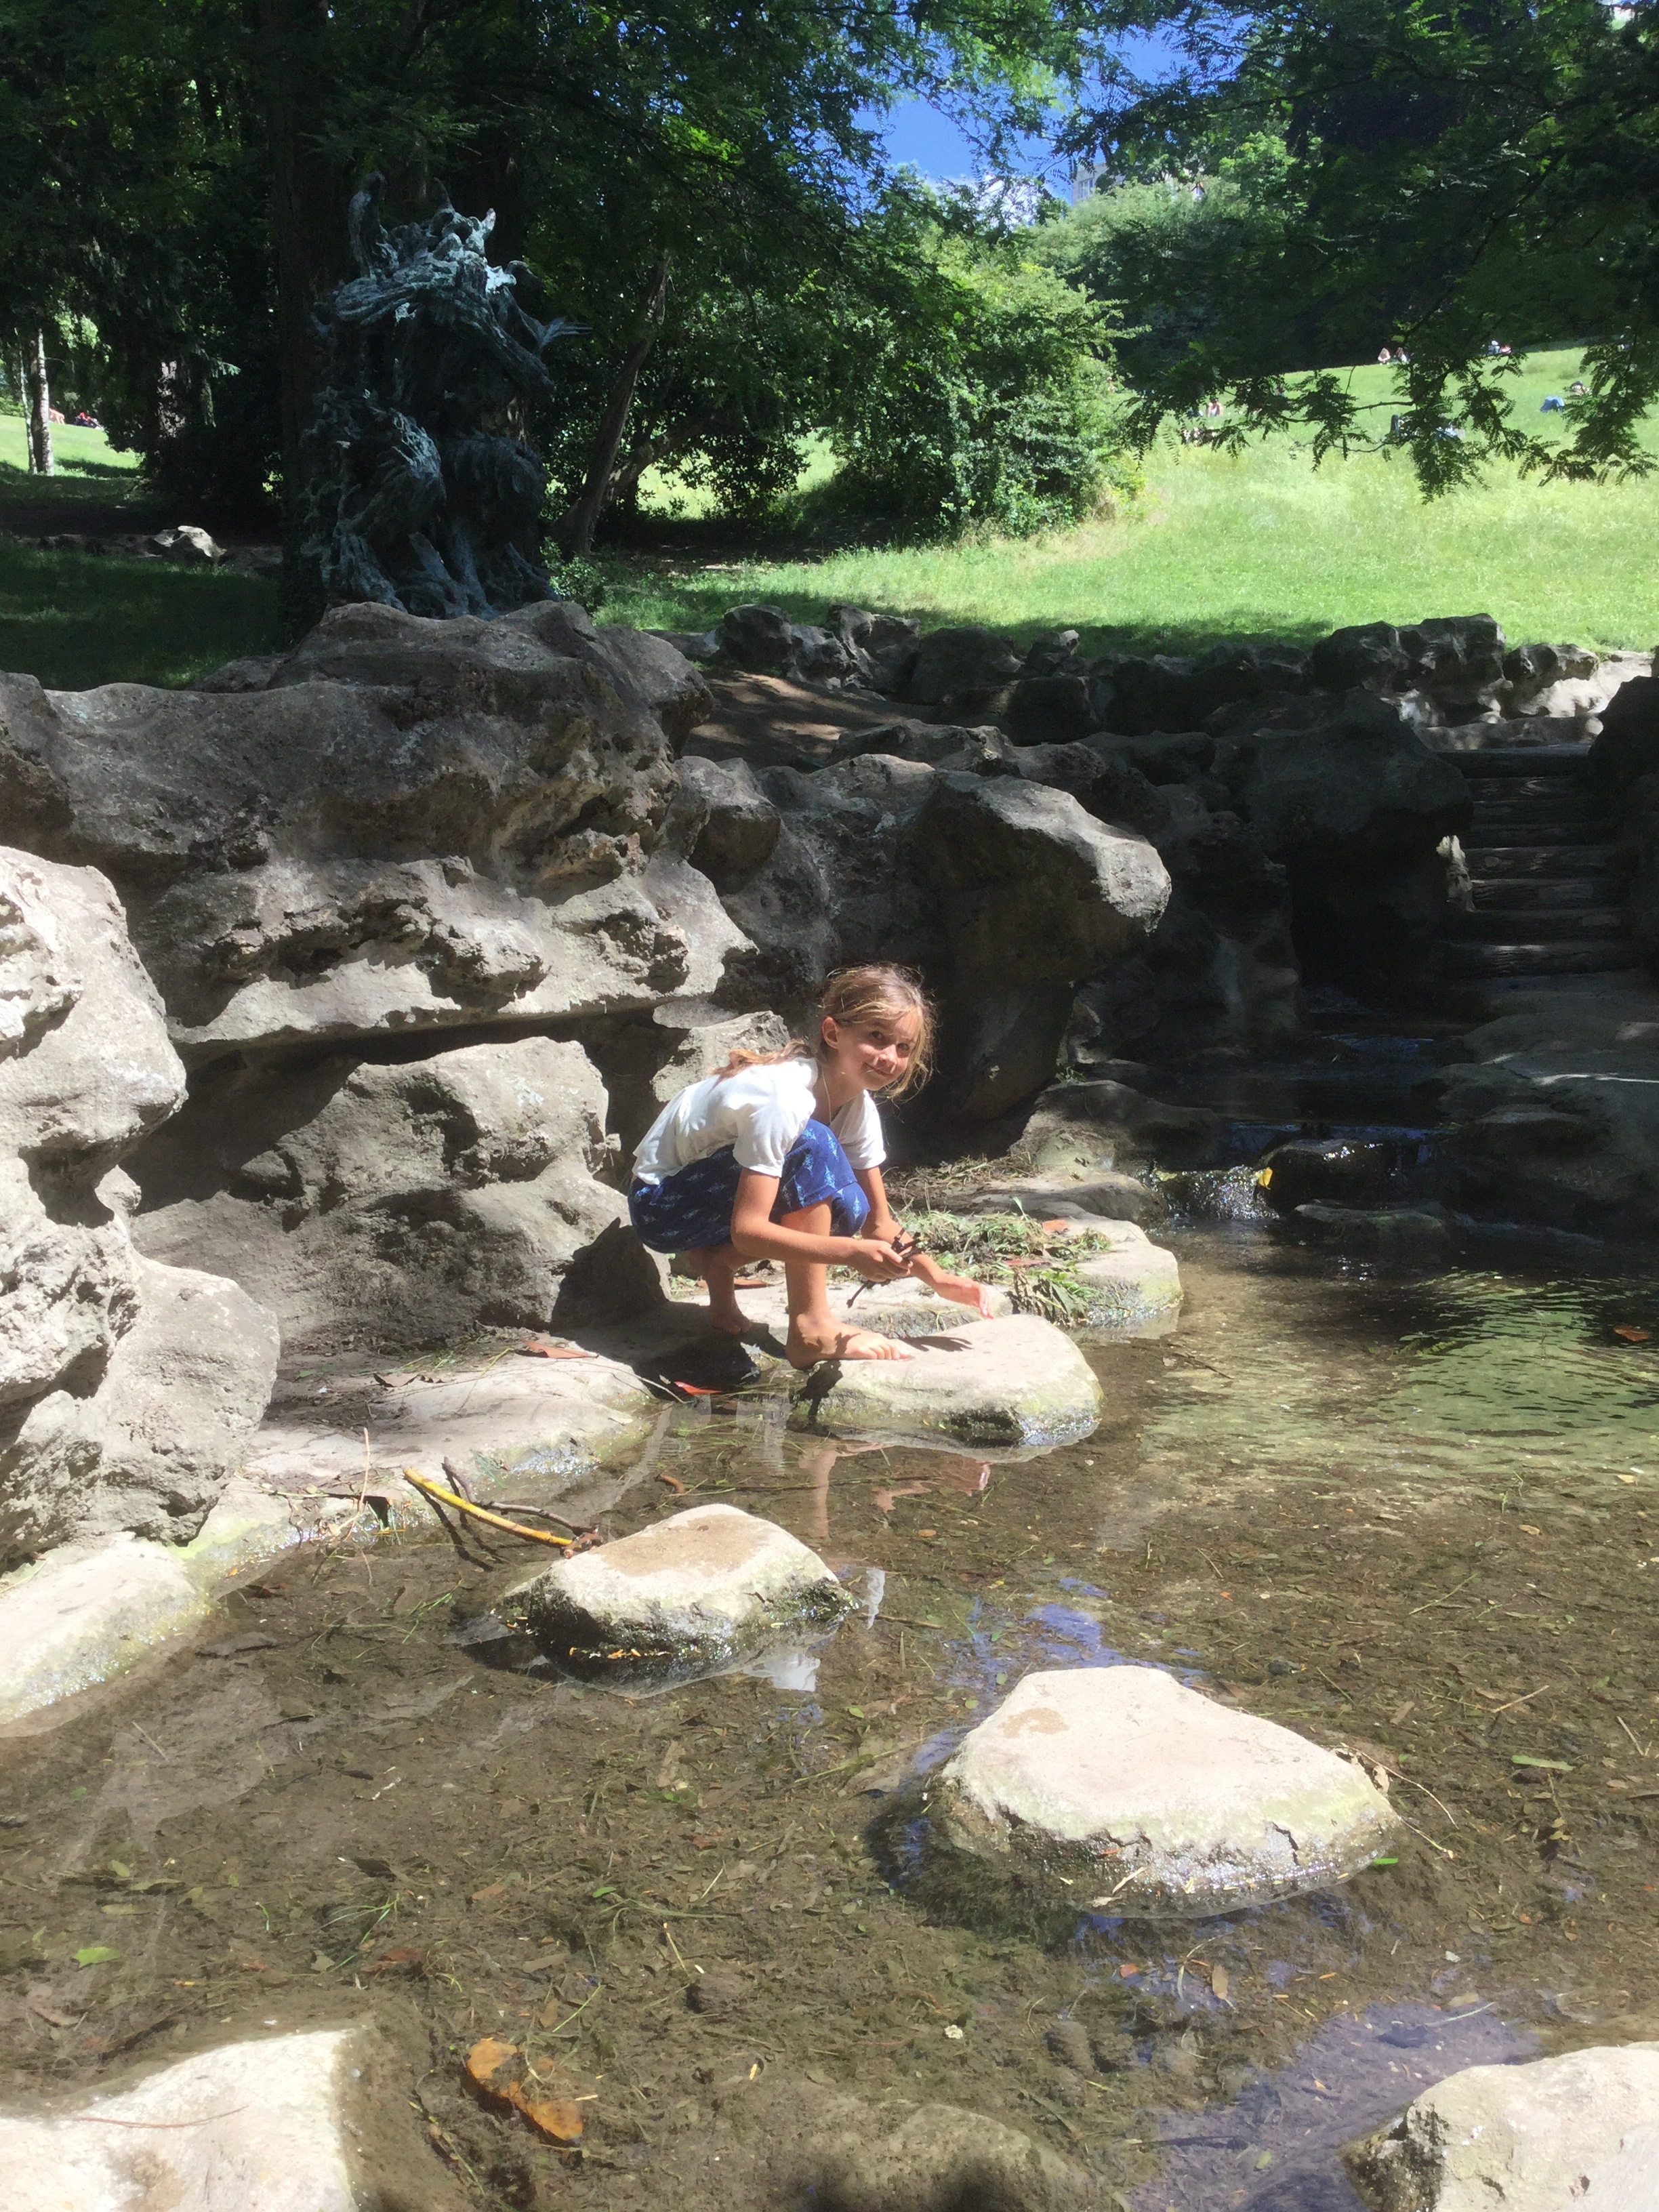 The park has waterfalls and little rivulets. This offers great spots for playing.